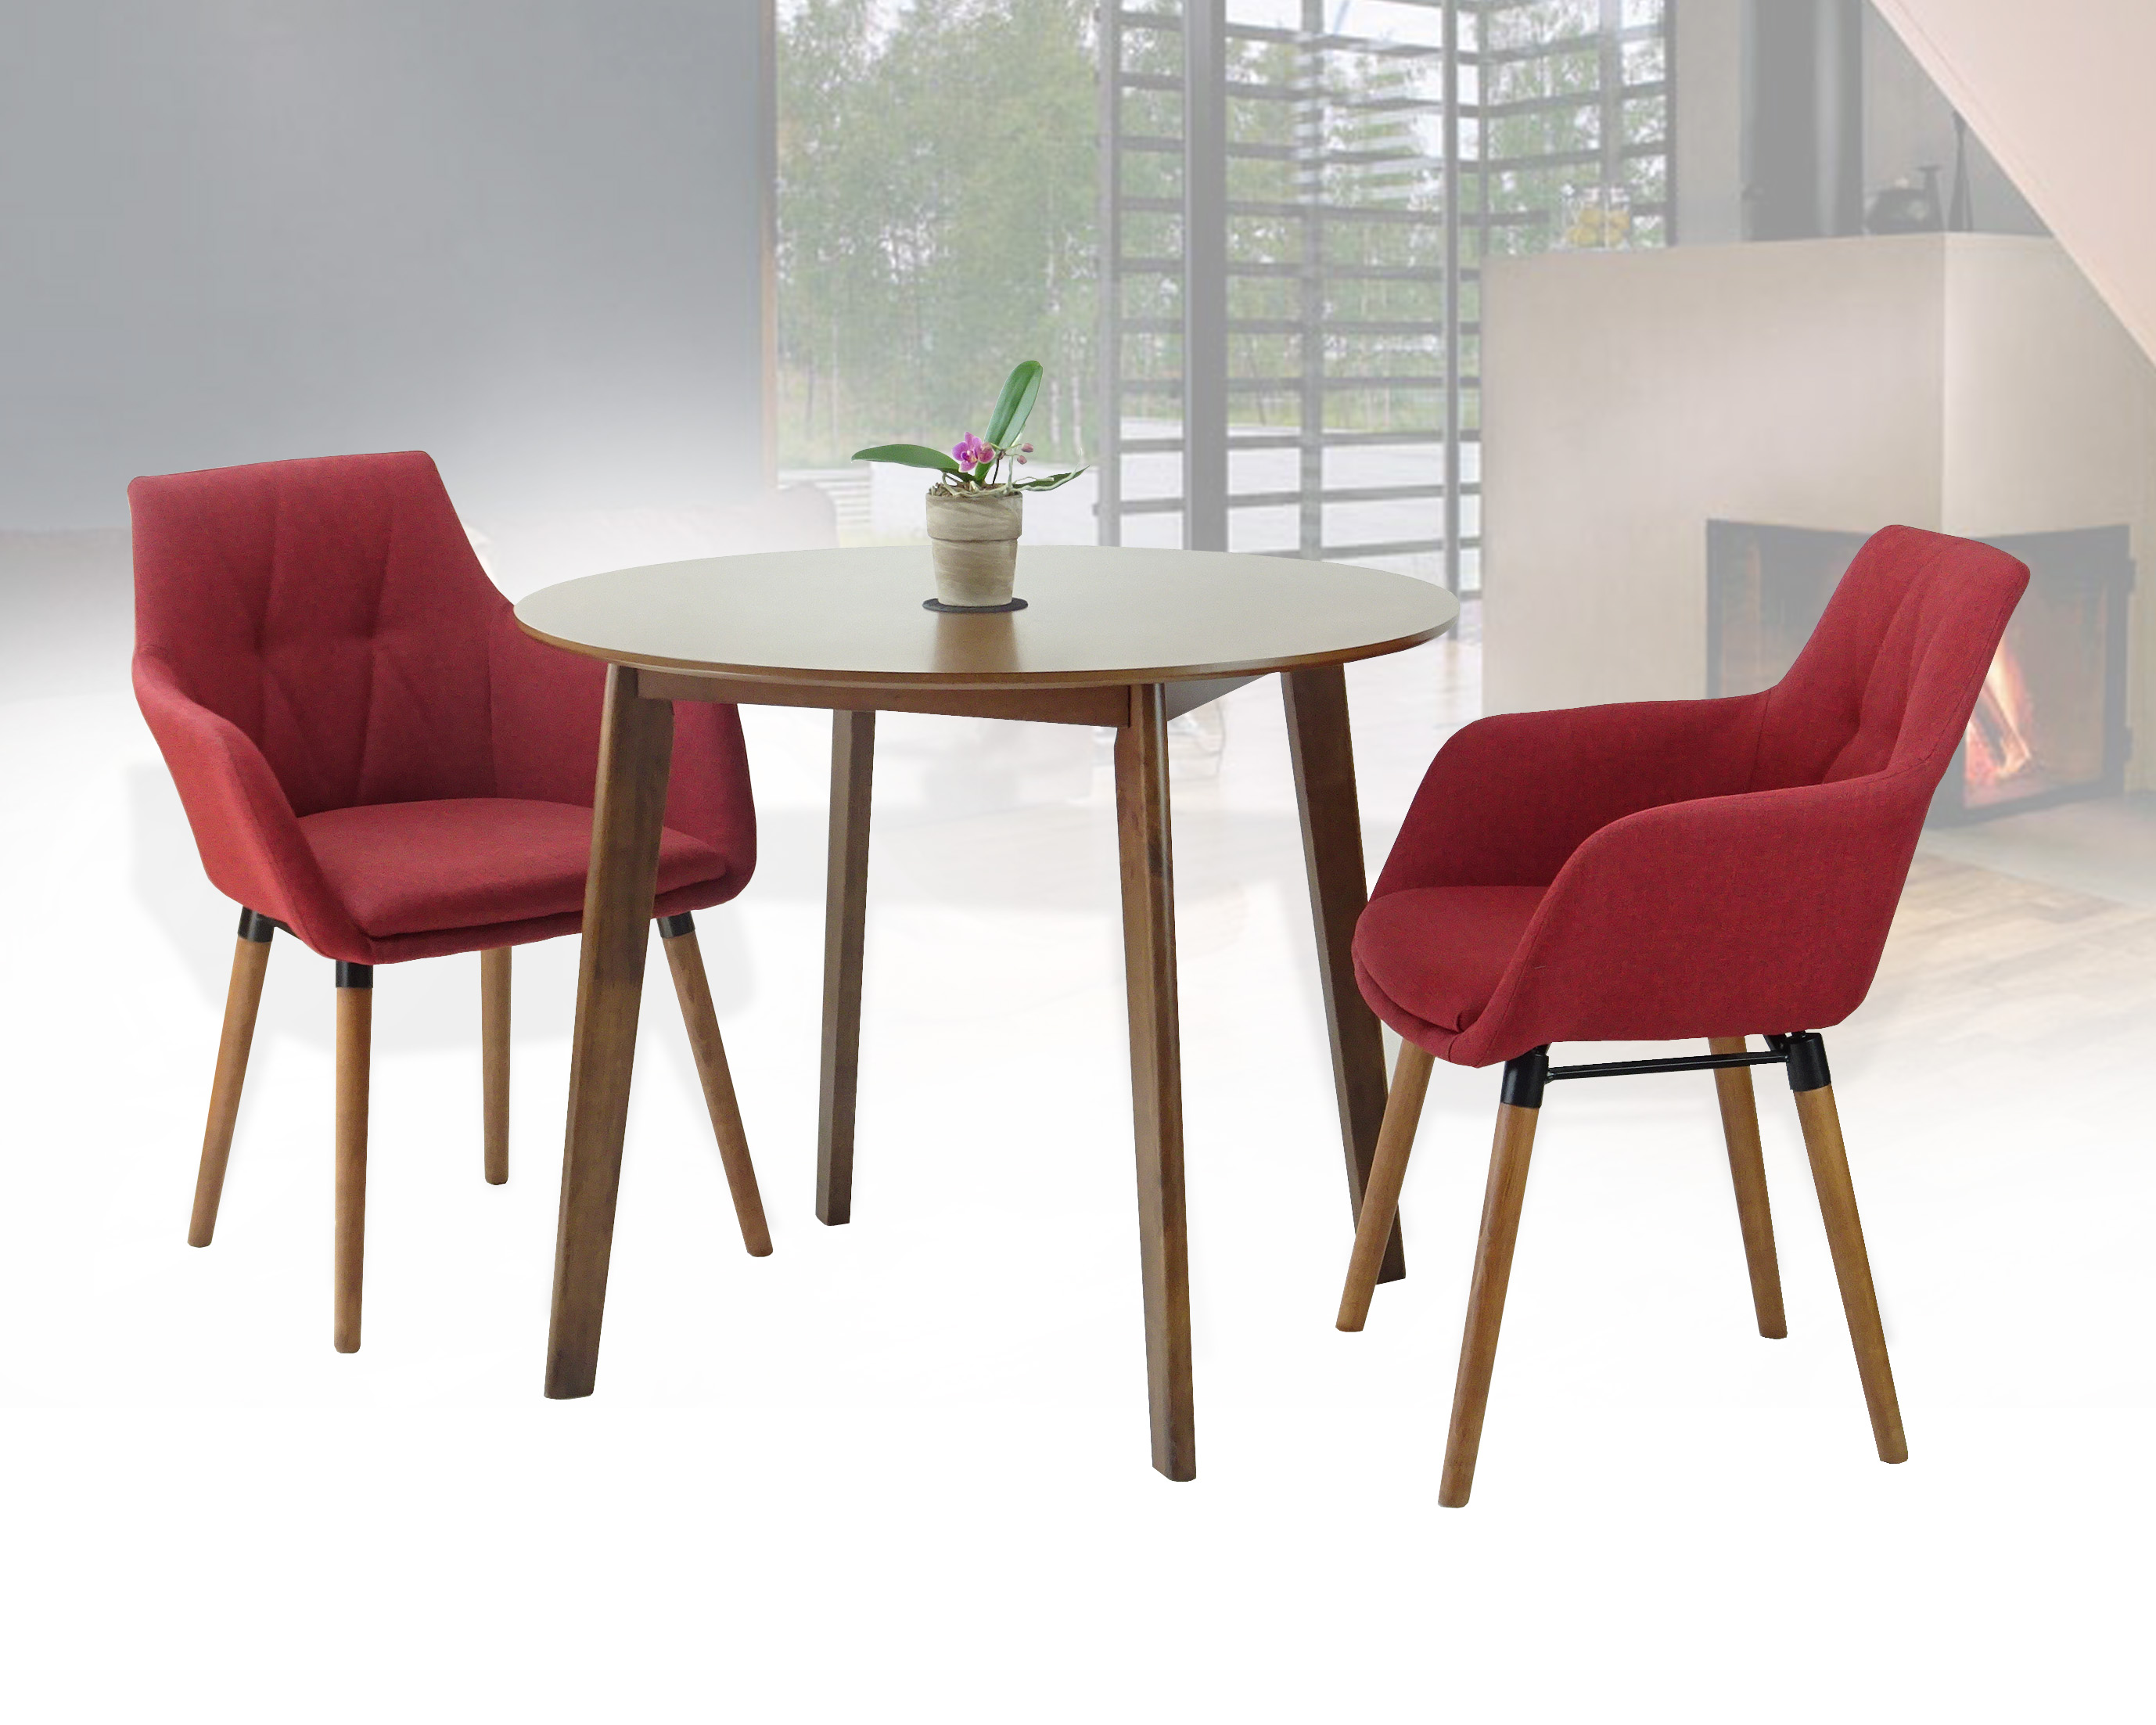 Buy dining kitchen set of 3 round wooden medium brown table with 2 alba armchairs red color in usa best price free shipping rattan usa